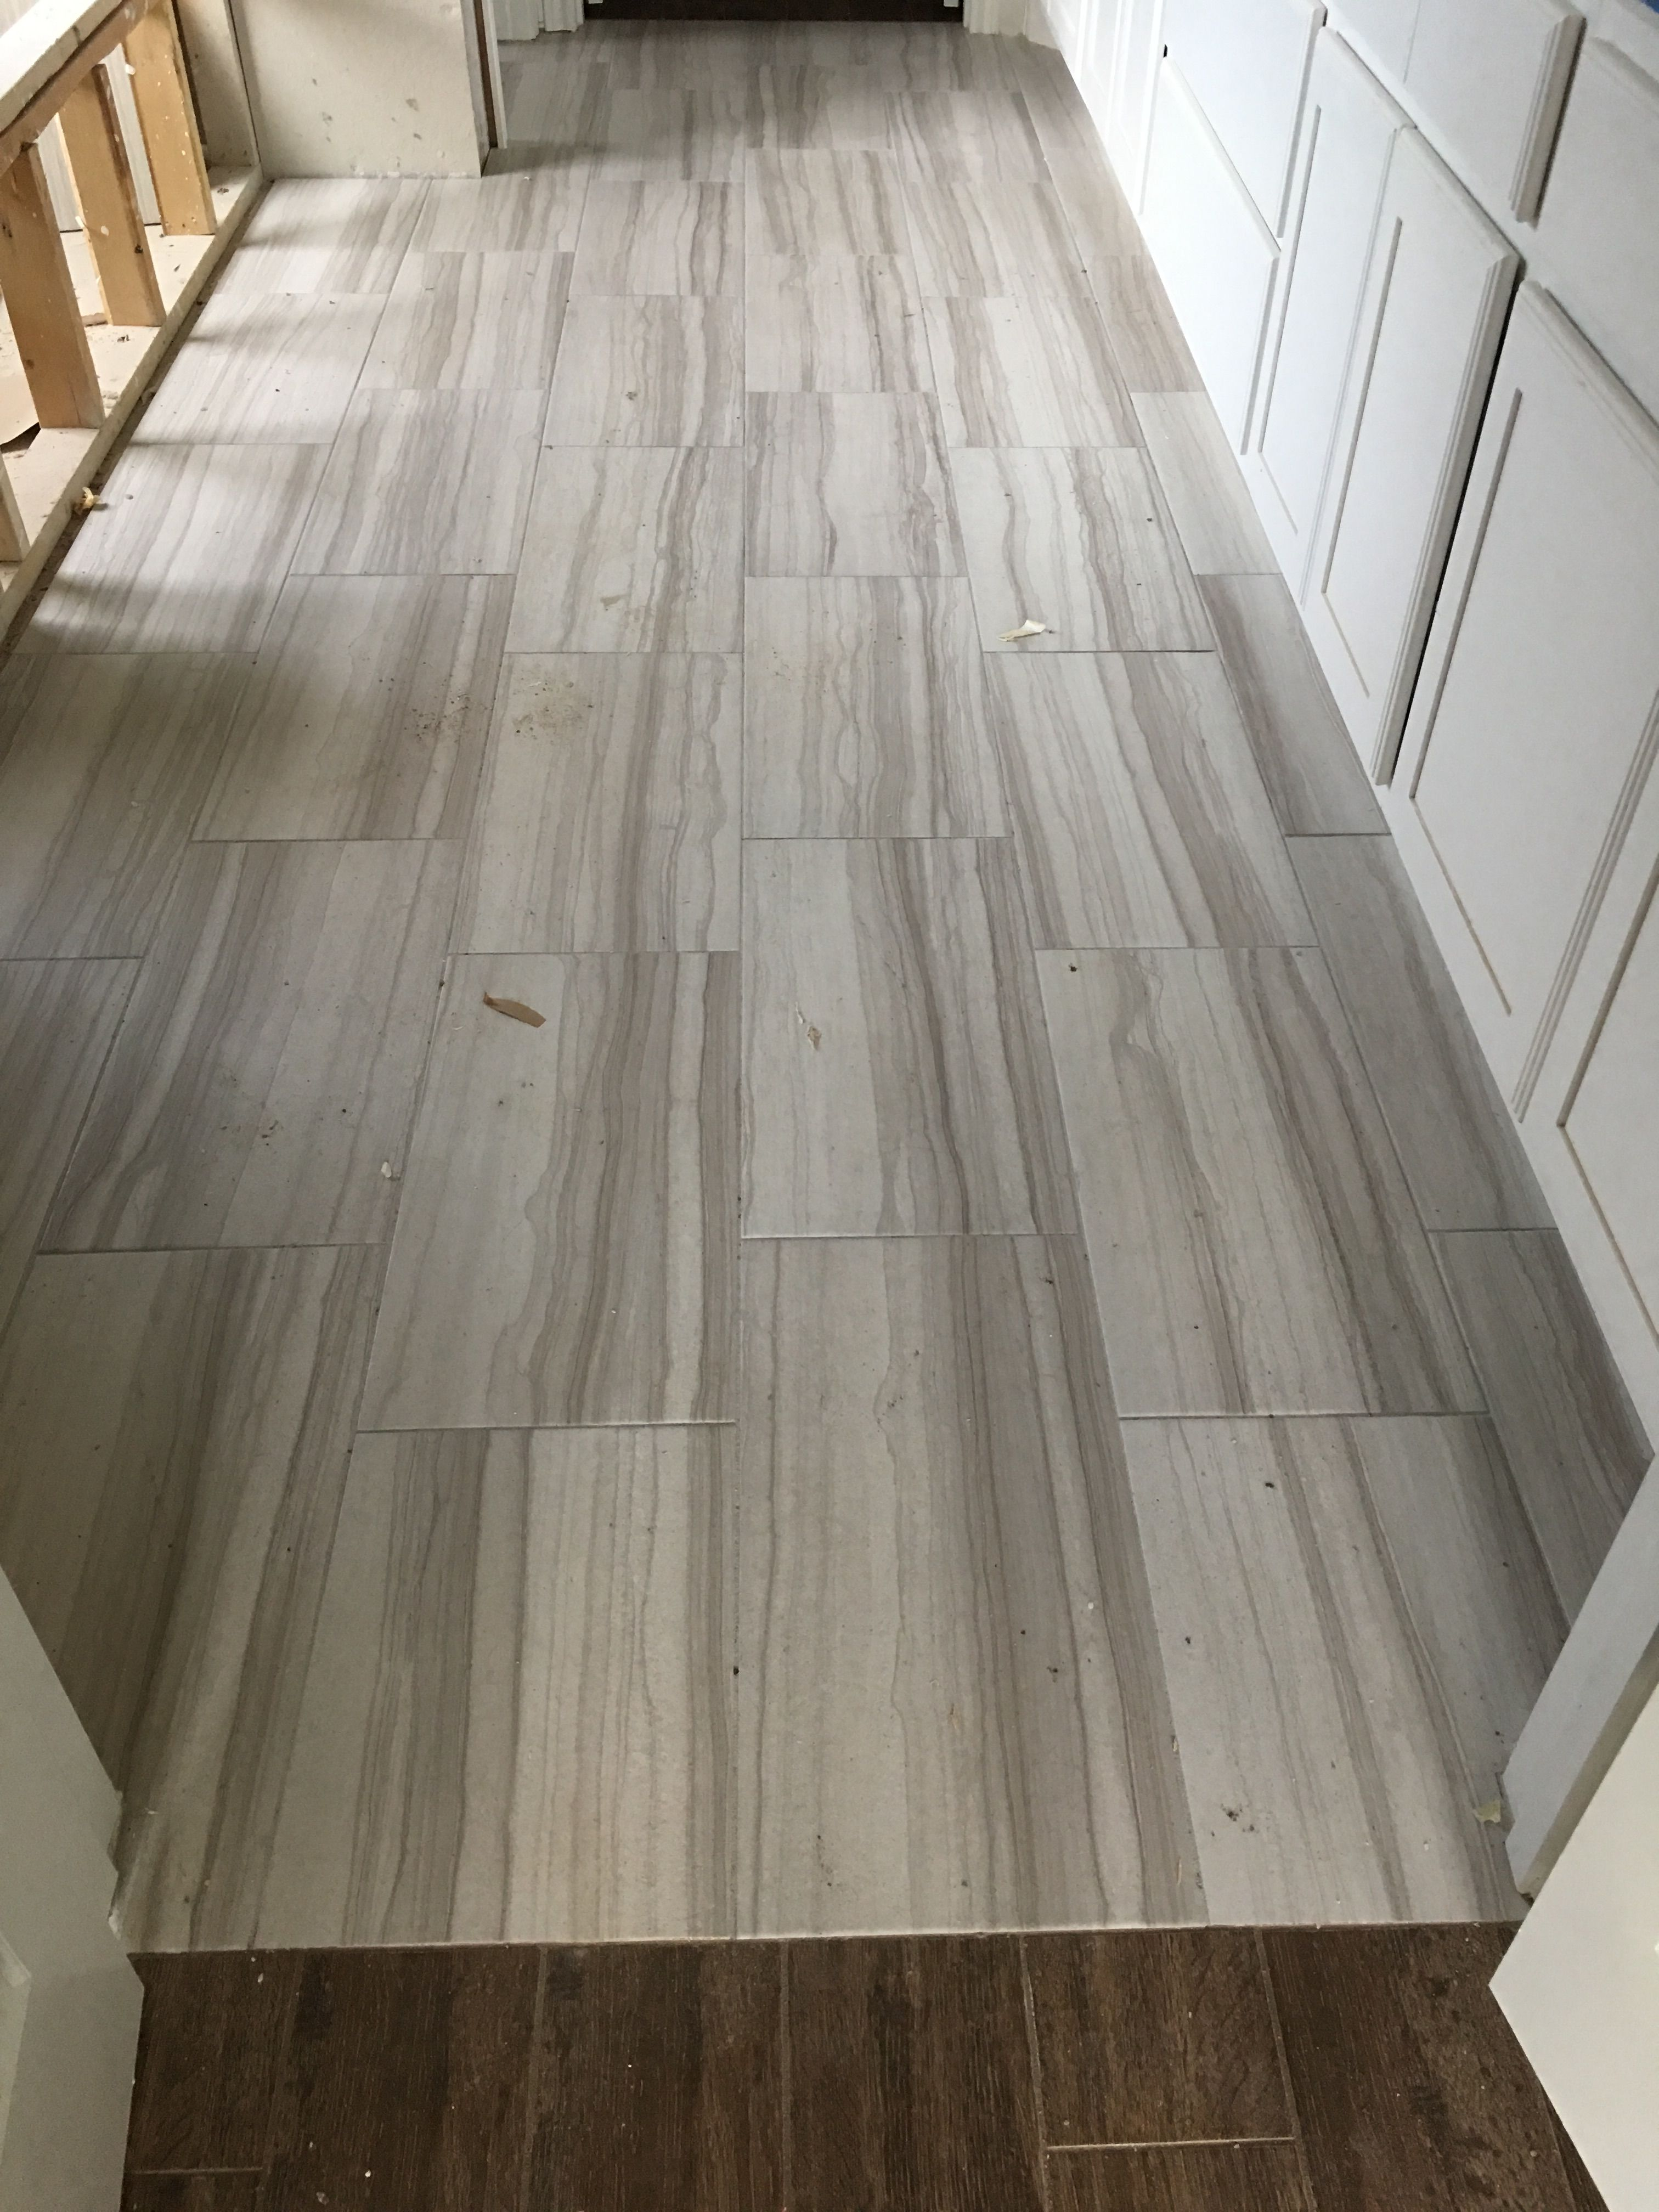 Interceramic Burano Bianca Veletta 12 X 24 W 1 8 Grout Lines Currently Ungrouted But Will Be Texrite Chromaflex Exec House Flooring Flooring Hardwood Floors